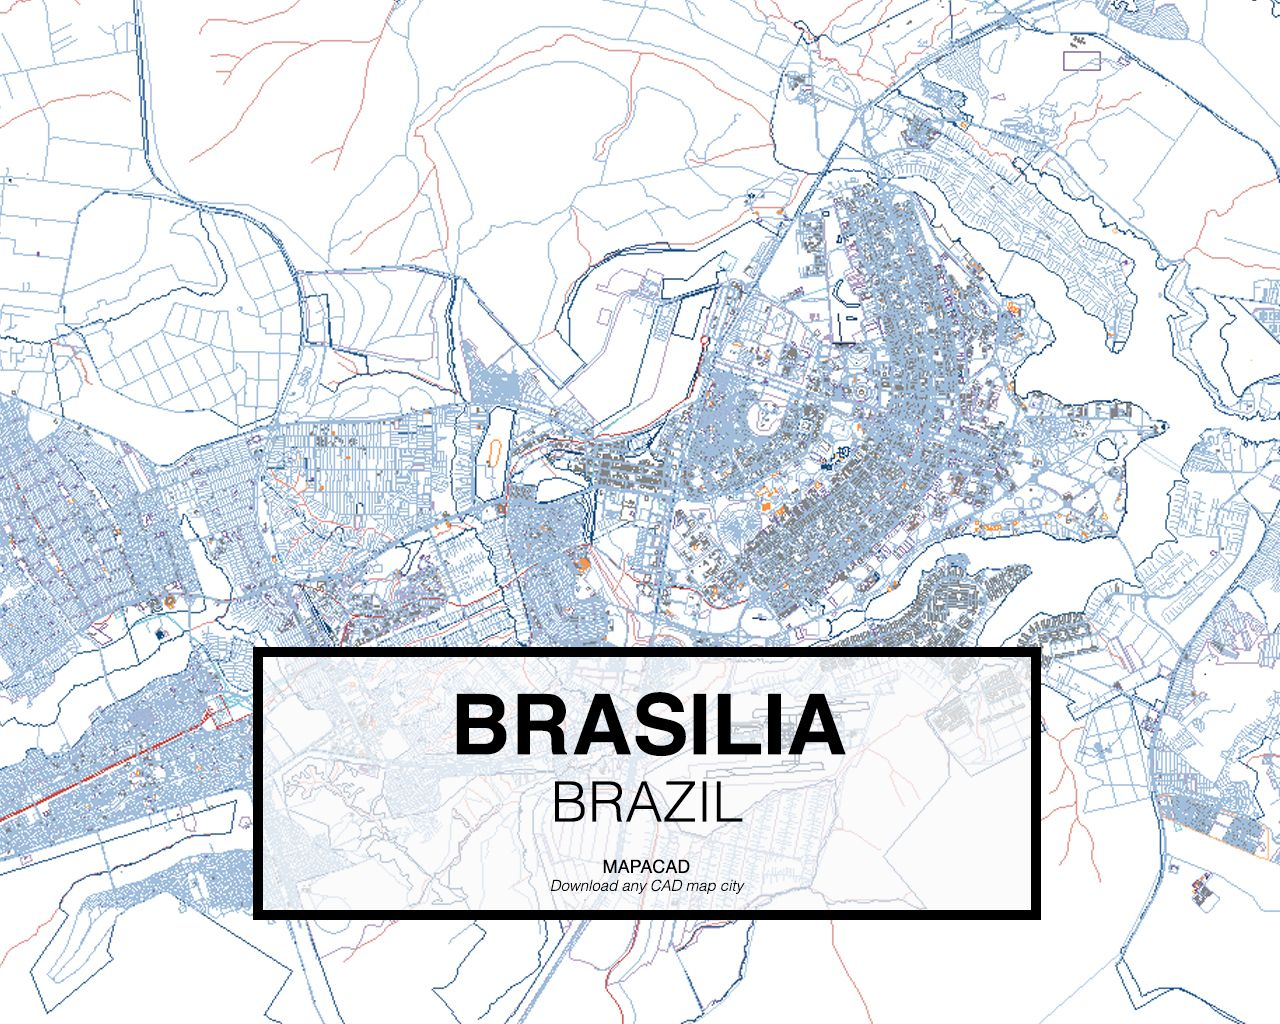 Brasilia brazil download cad map city in dwg ready to use in download cad map city in dwg ready to use in autocad gumiabroncs Image collections